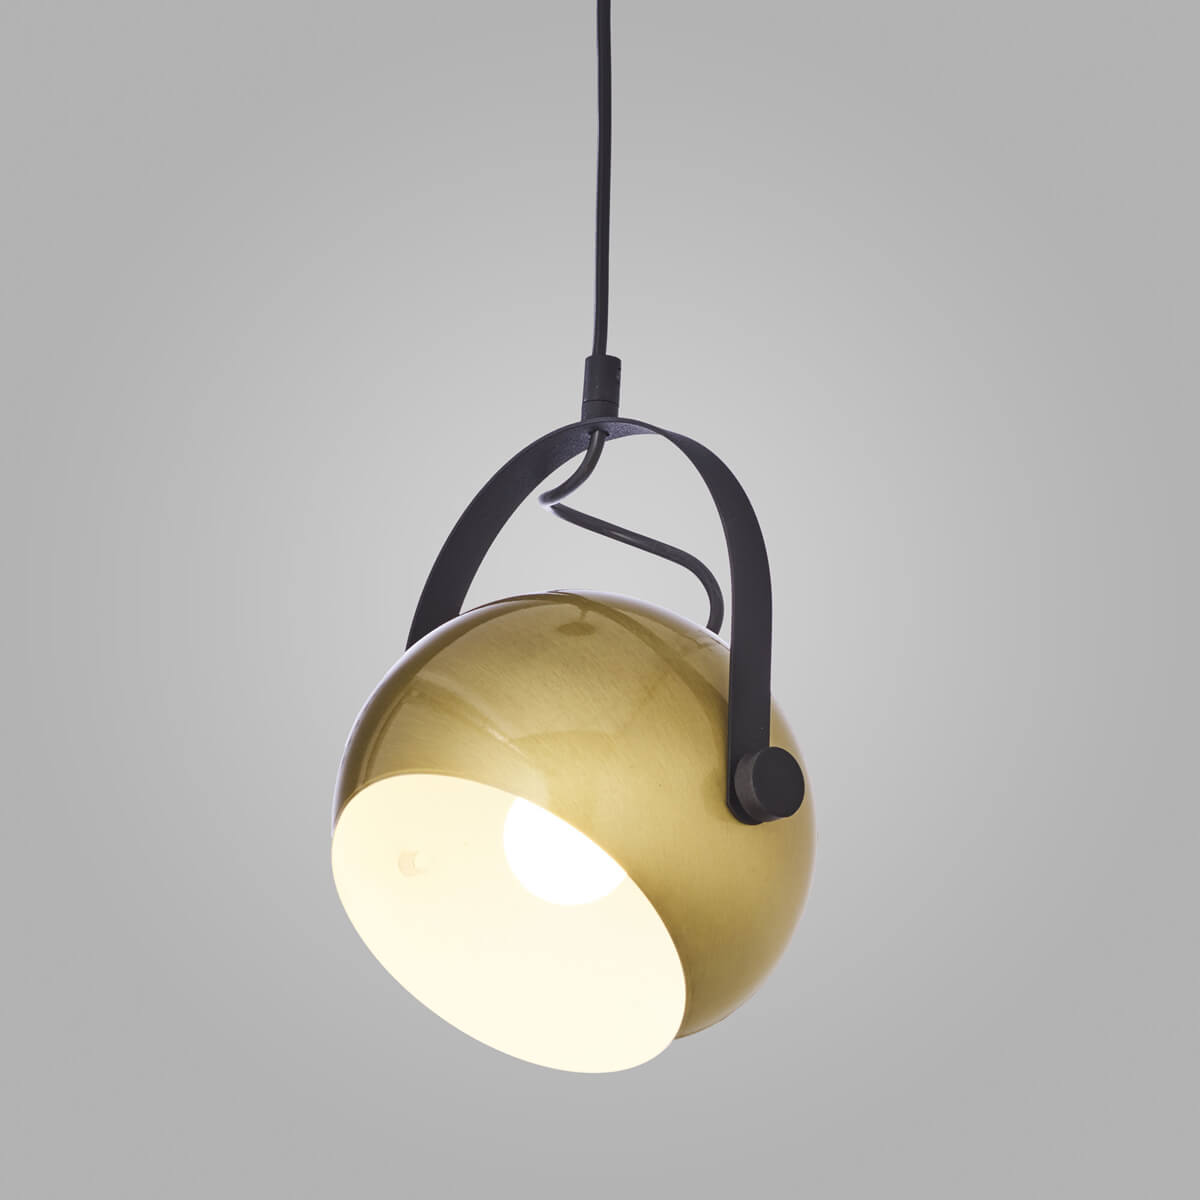 Светильник TK Lighting 4151 Parma Gold